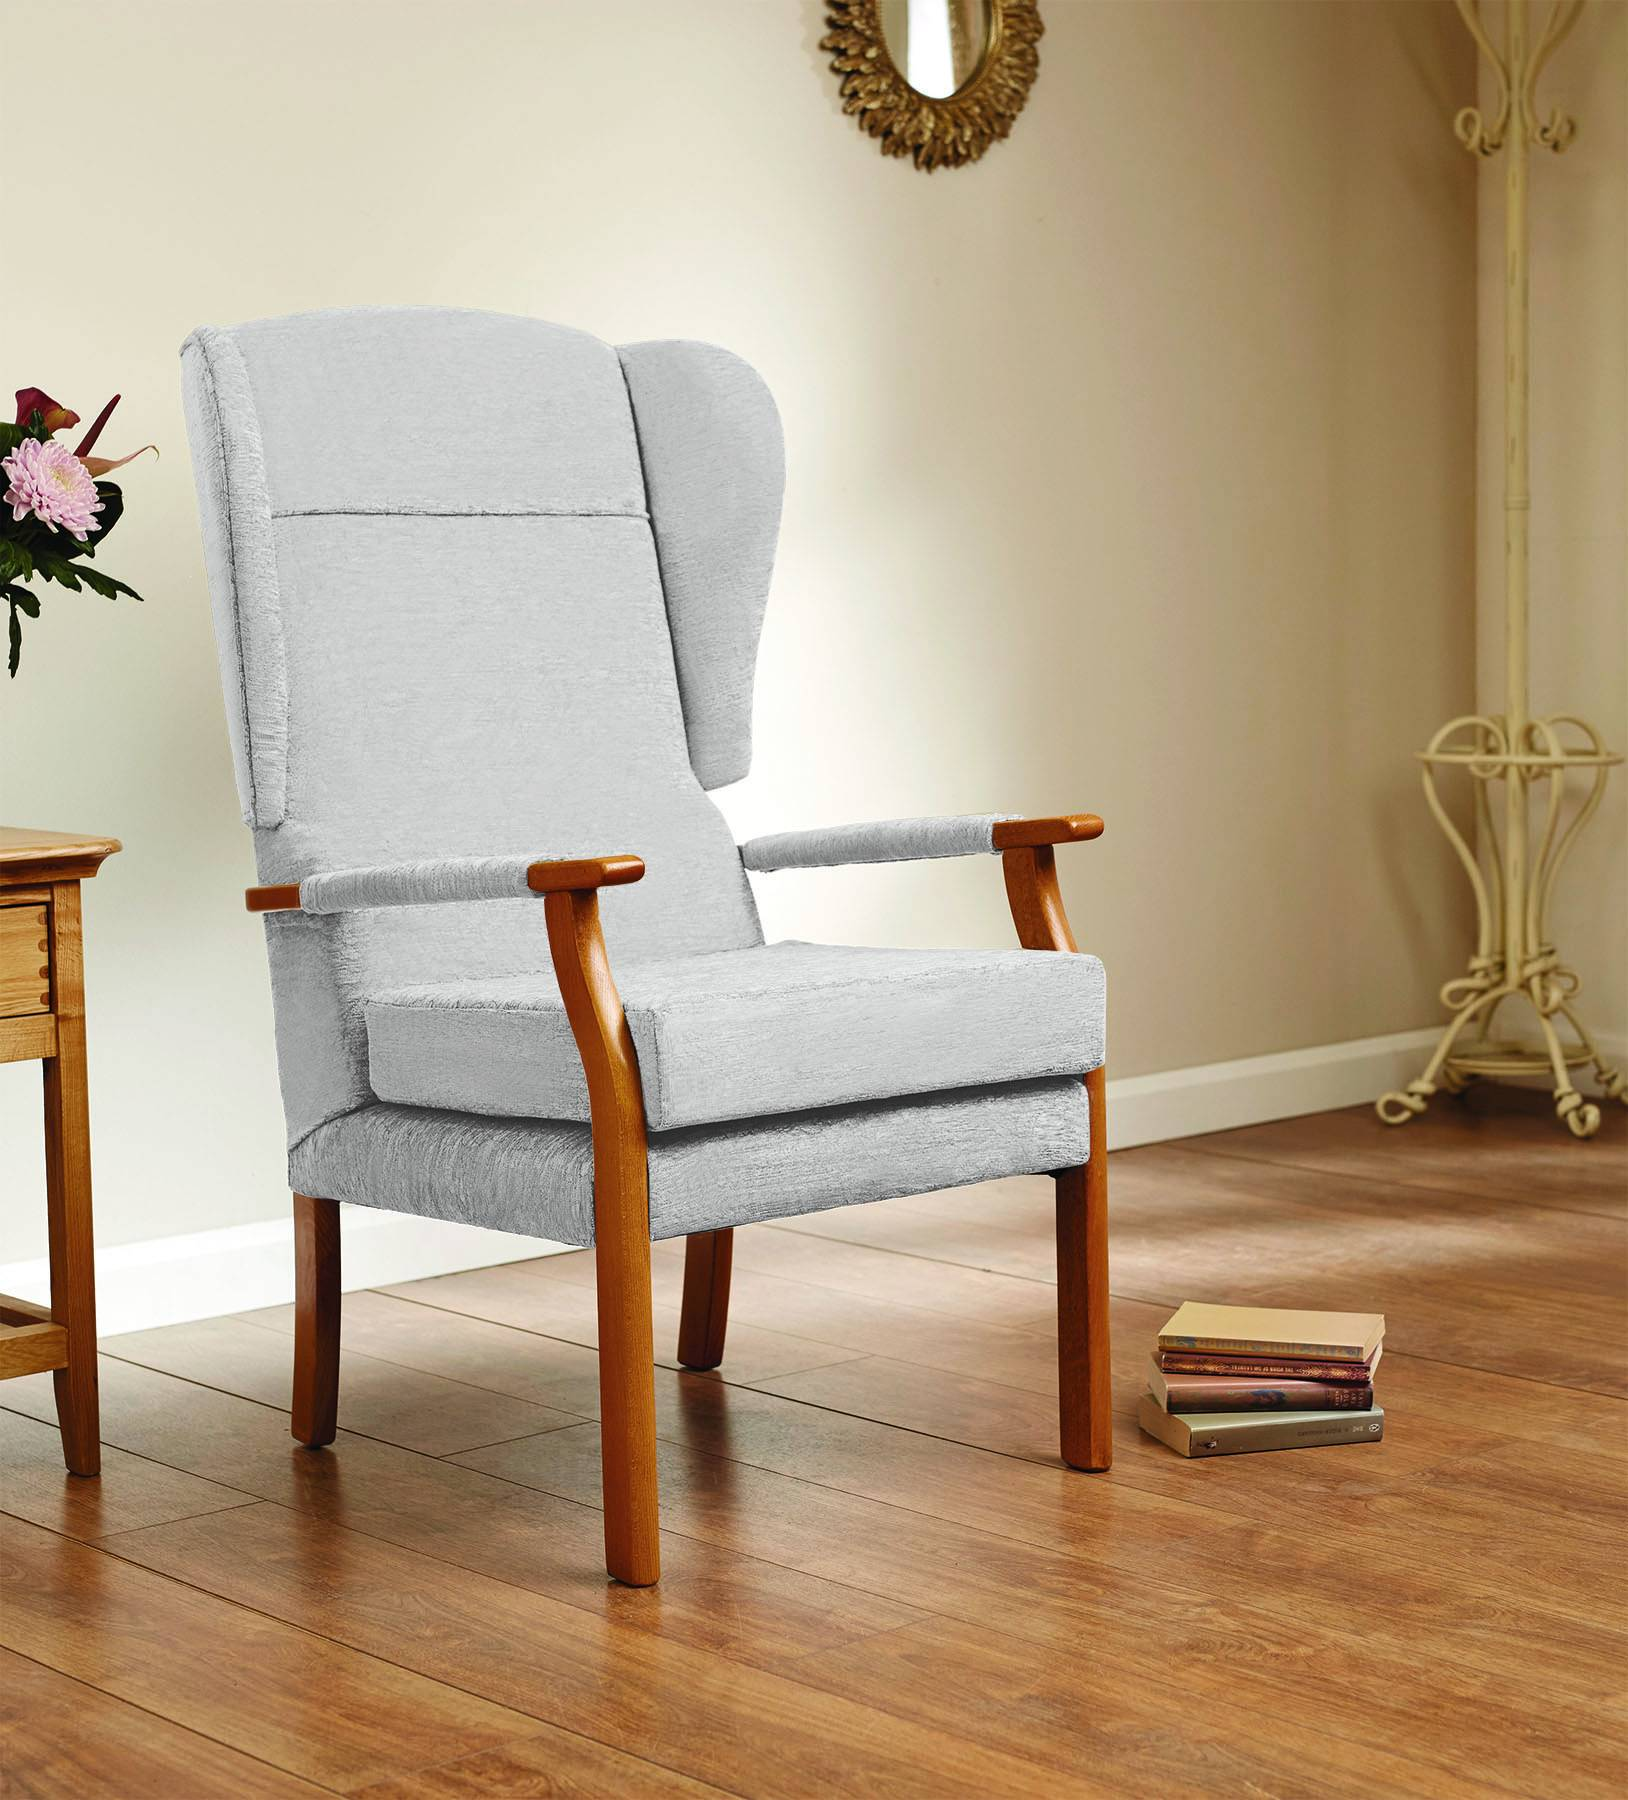 Introducing The Oakdale Fireside Chair